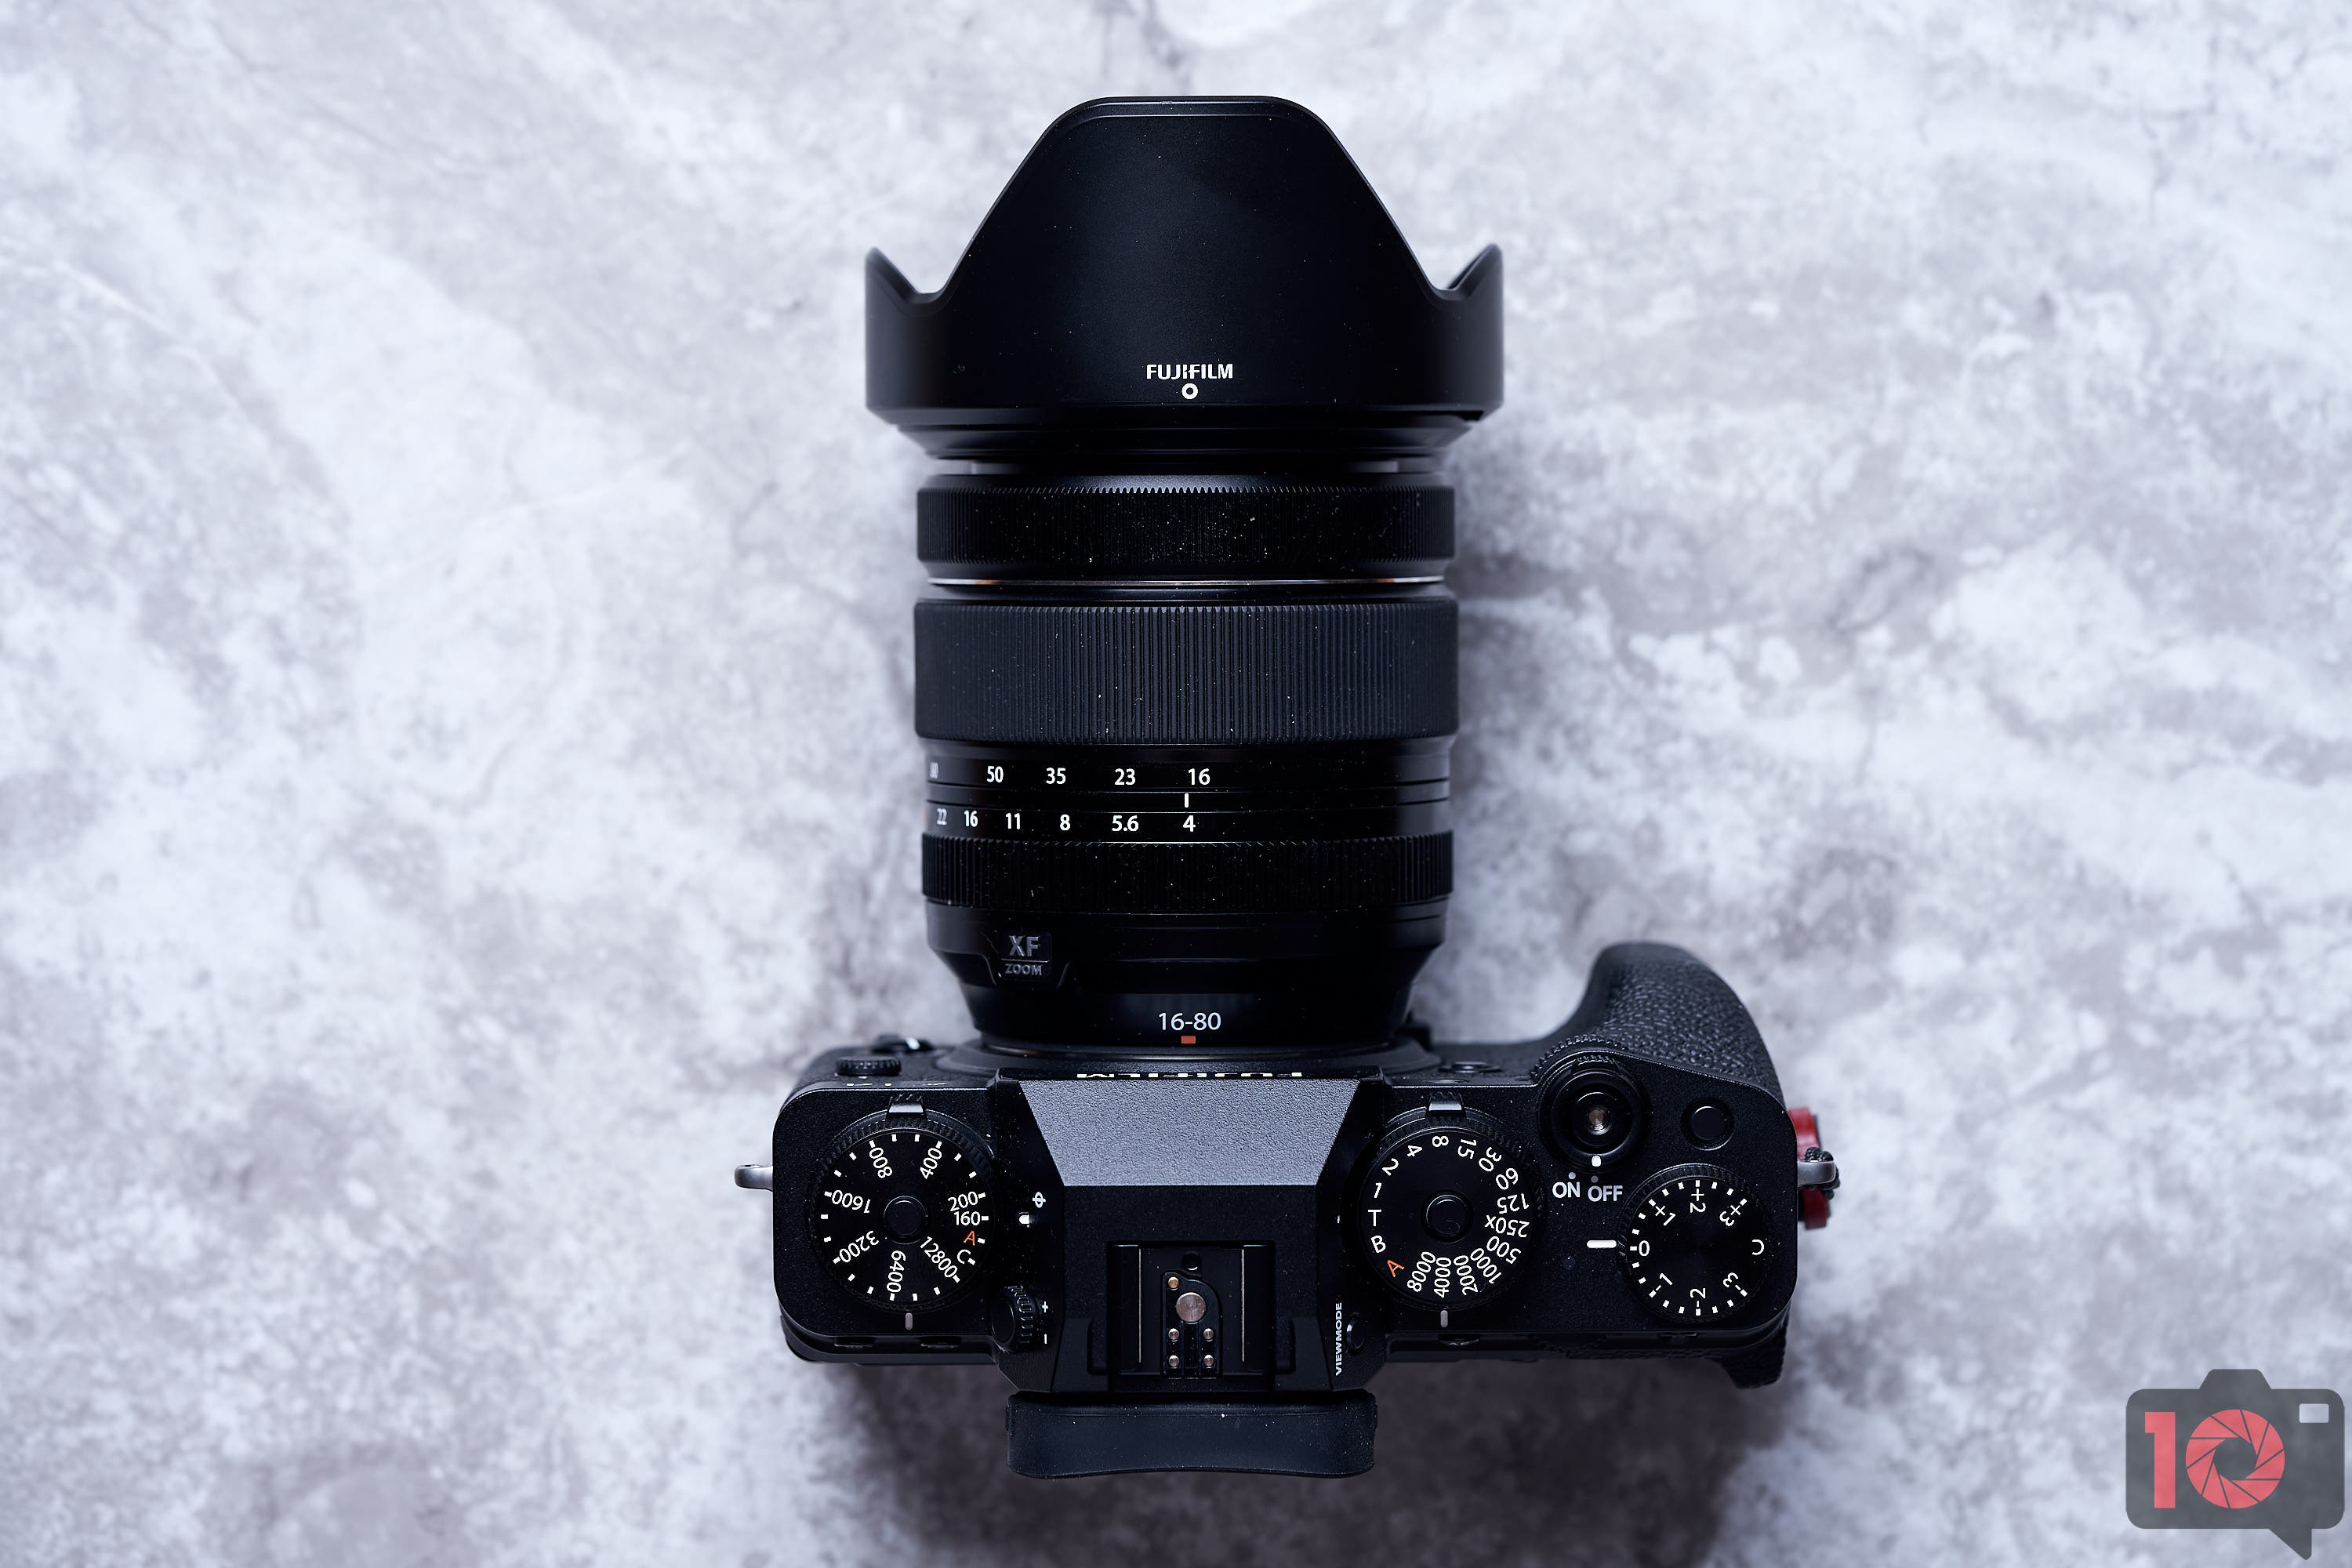 One Zoom to Rule Them All? Fujifilm 16-80mm F4 Lens Review